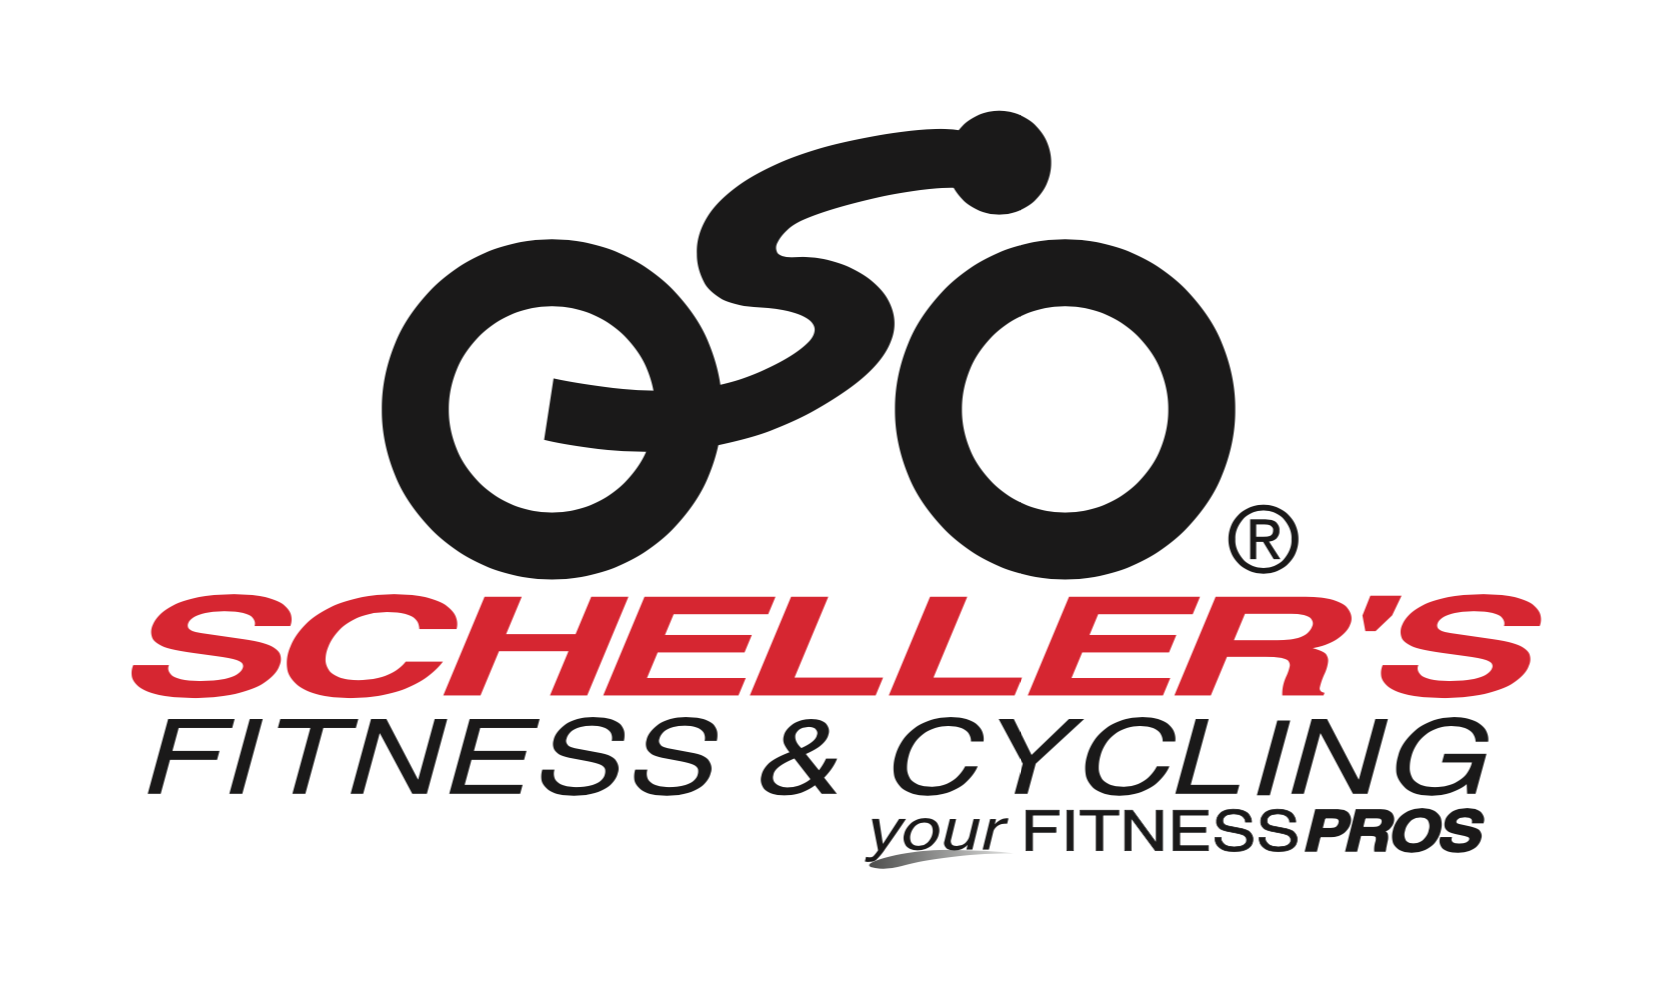 Shellers-Fitness-Cycling-logo